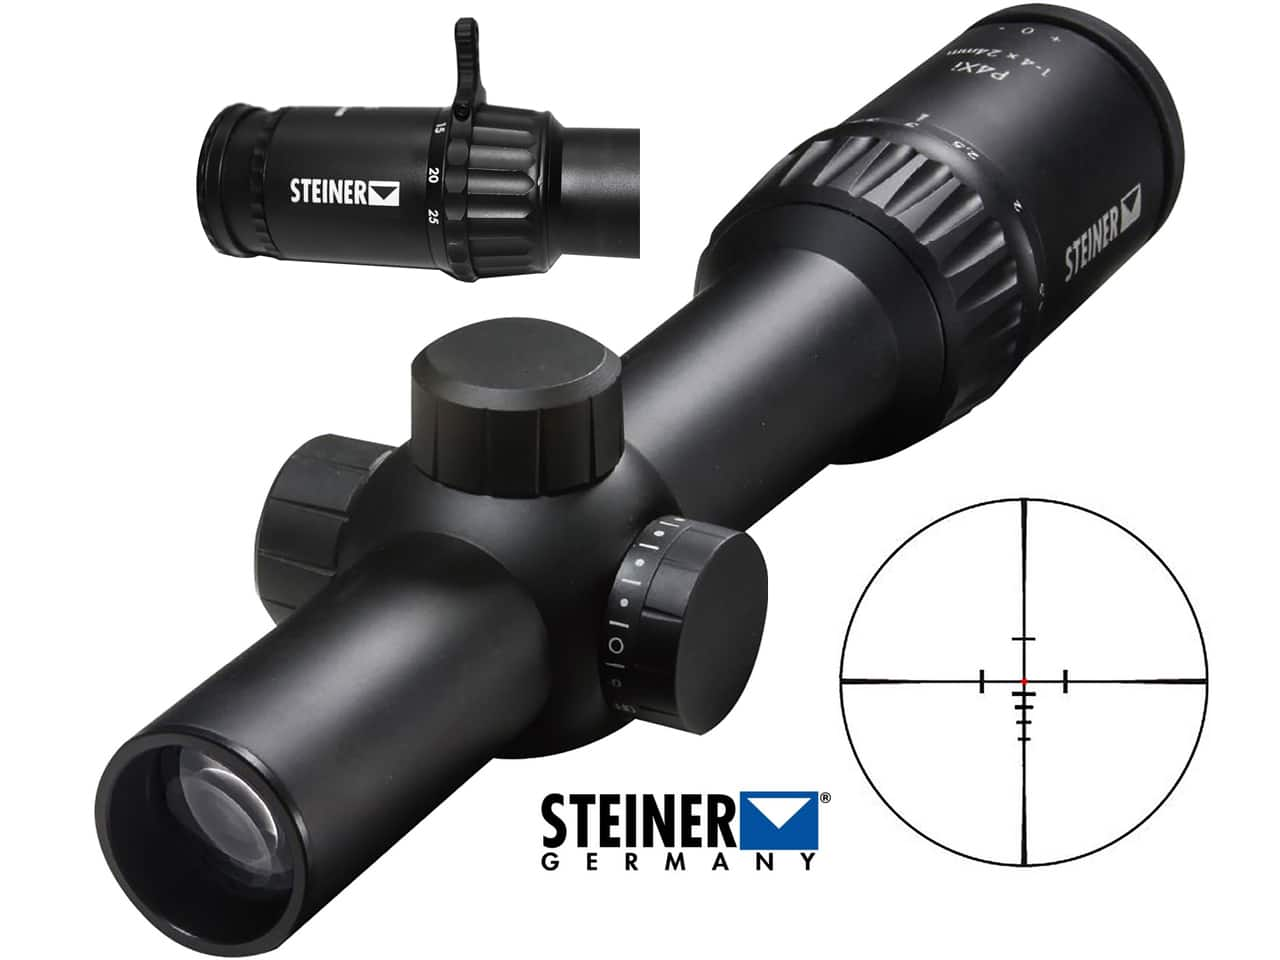 Steiner P4Xi Rifle Scope 30mm Tube 1-4x 24mm Illuminated Reticle w/Throw Lever For $479